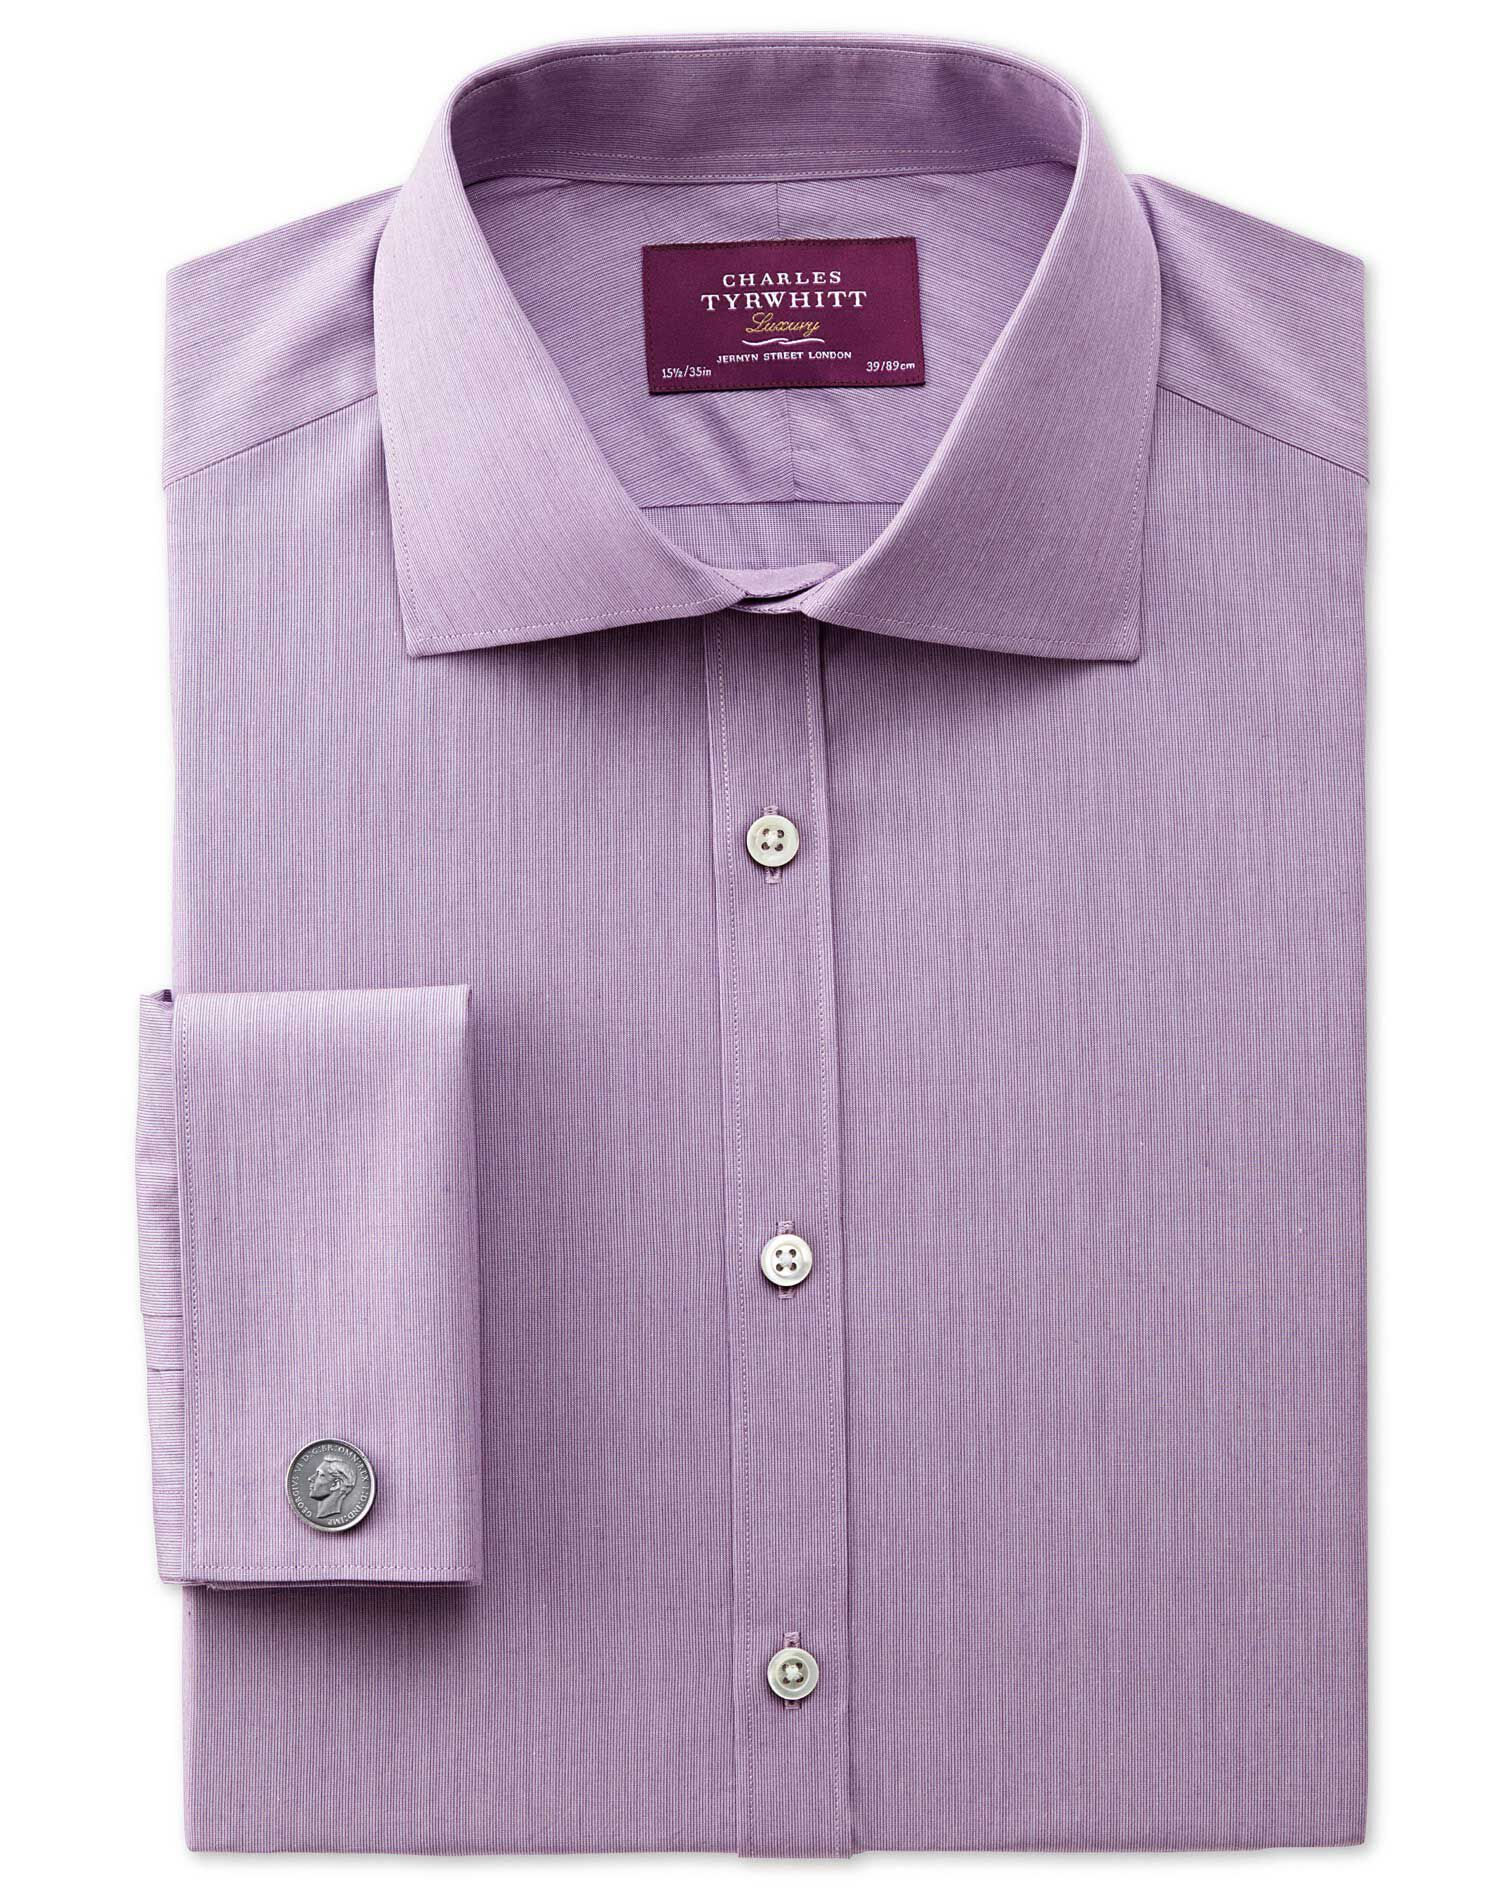 Extra Slim Fit Semi-Cutaway Collar Luxury Poplin Lilac Cotton Formal Shirt Double Cuff Size 14.5/33